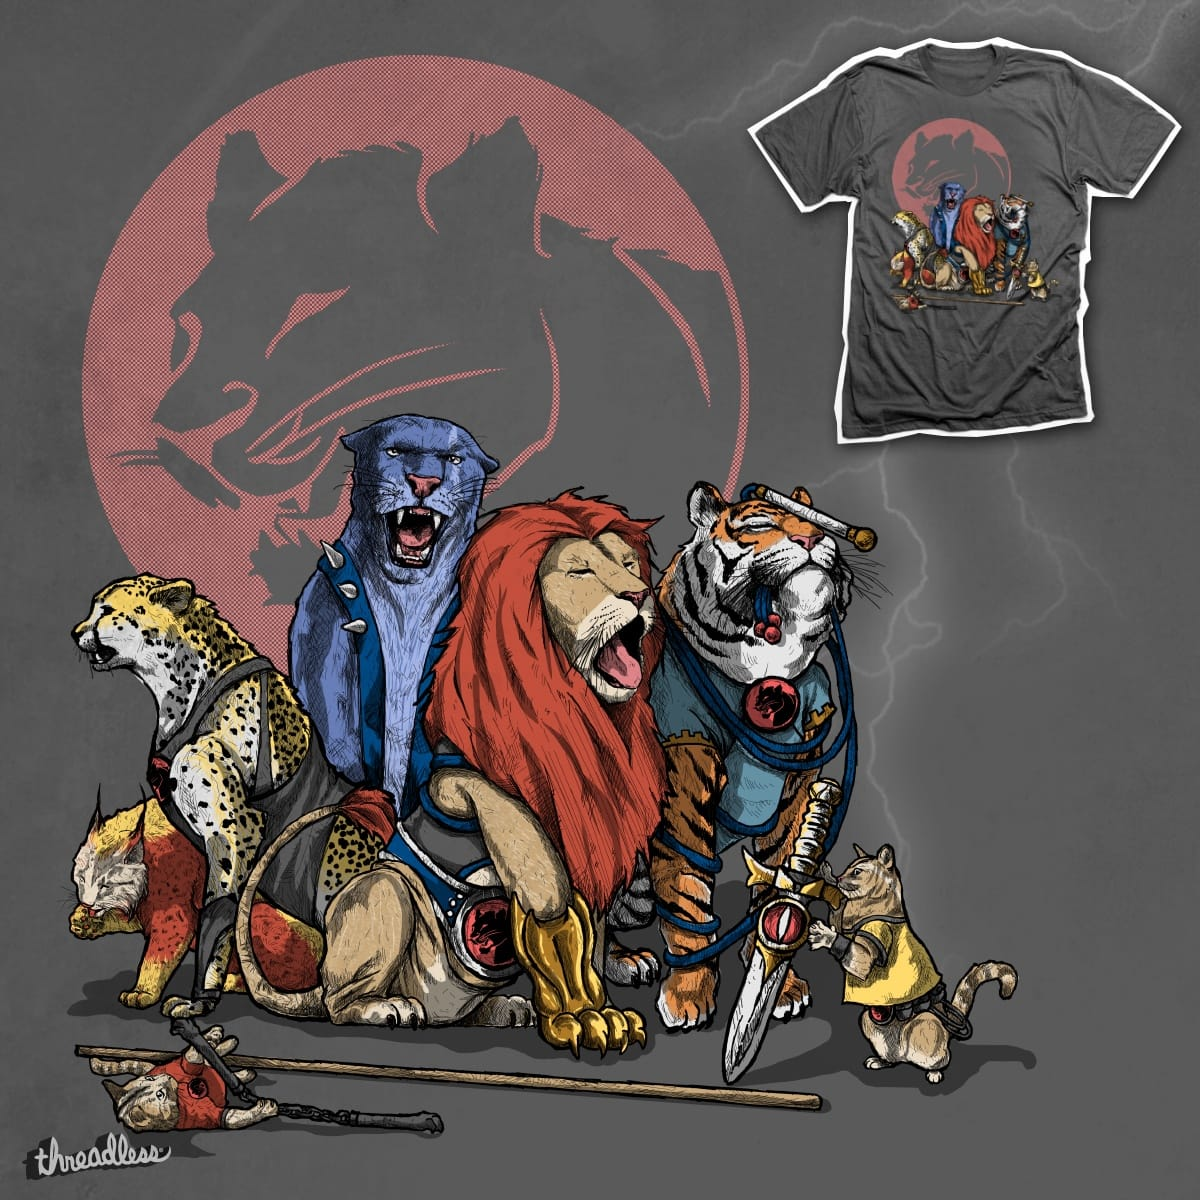 About Thunder and Cats by Marcos Moraes and Sandalo on Threadless